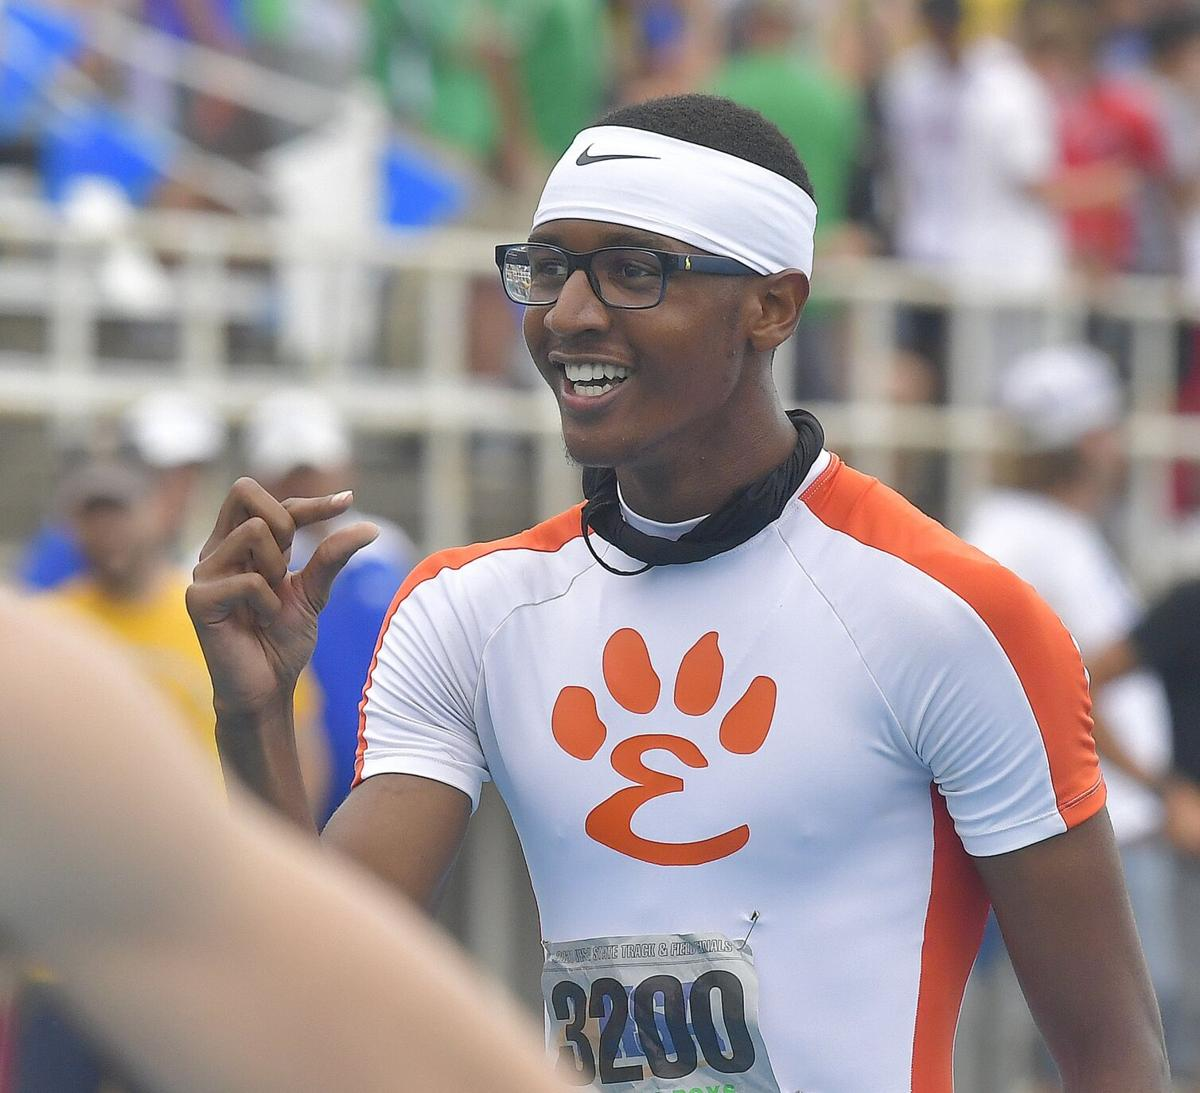 Illinois Class 3A State Track Meet